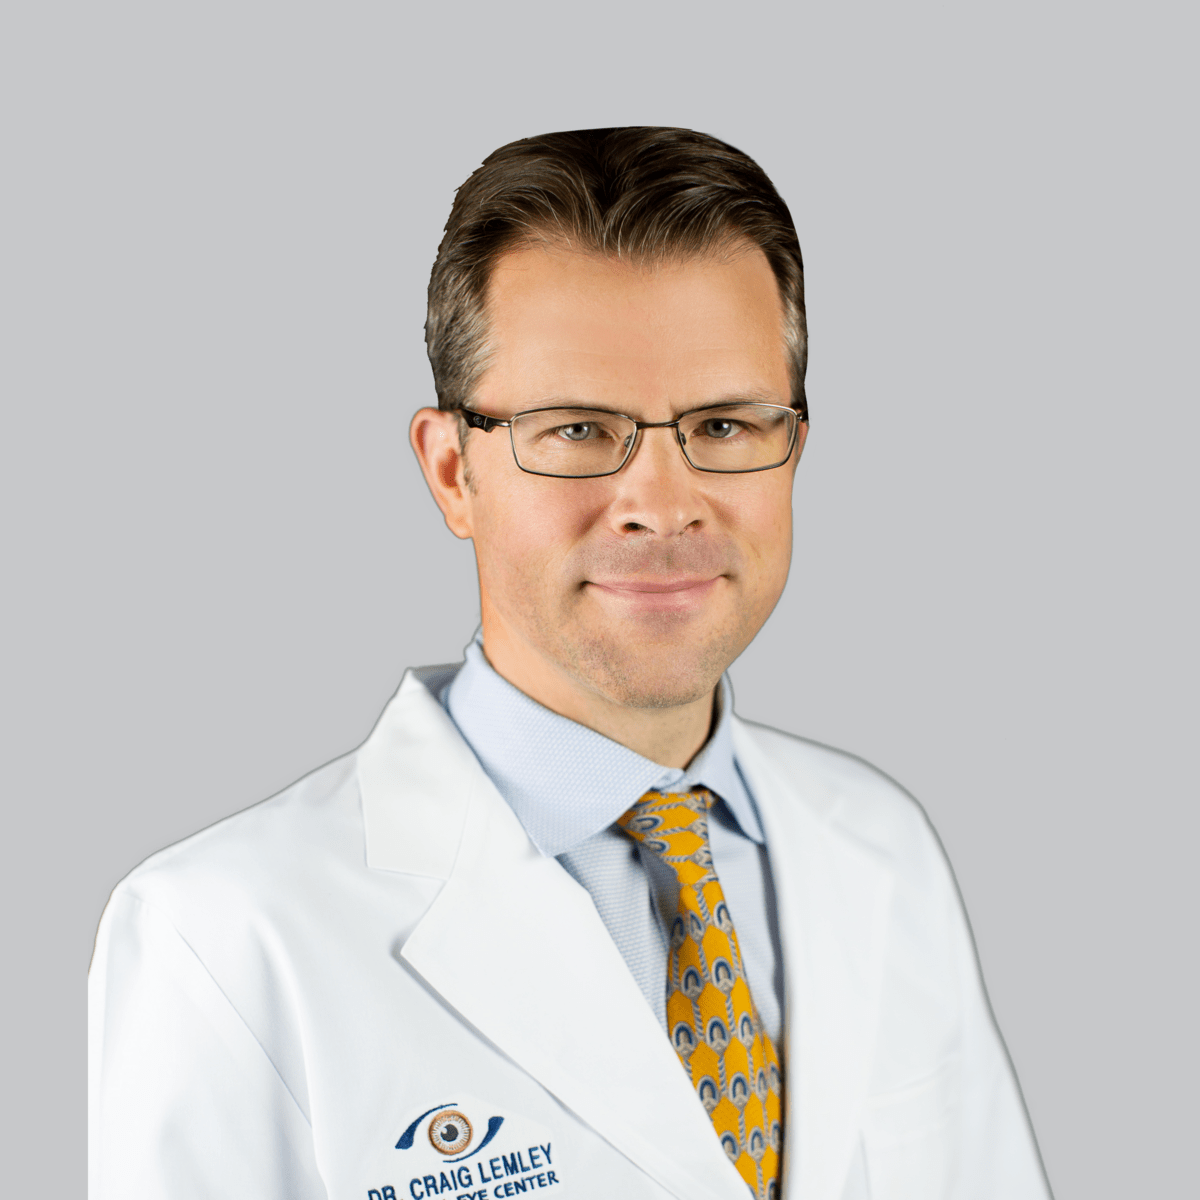 CRAIG LEMLEY, MD